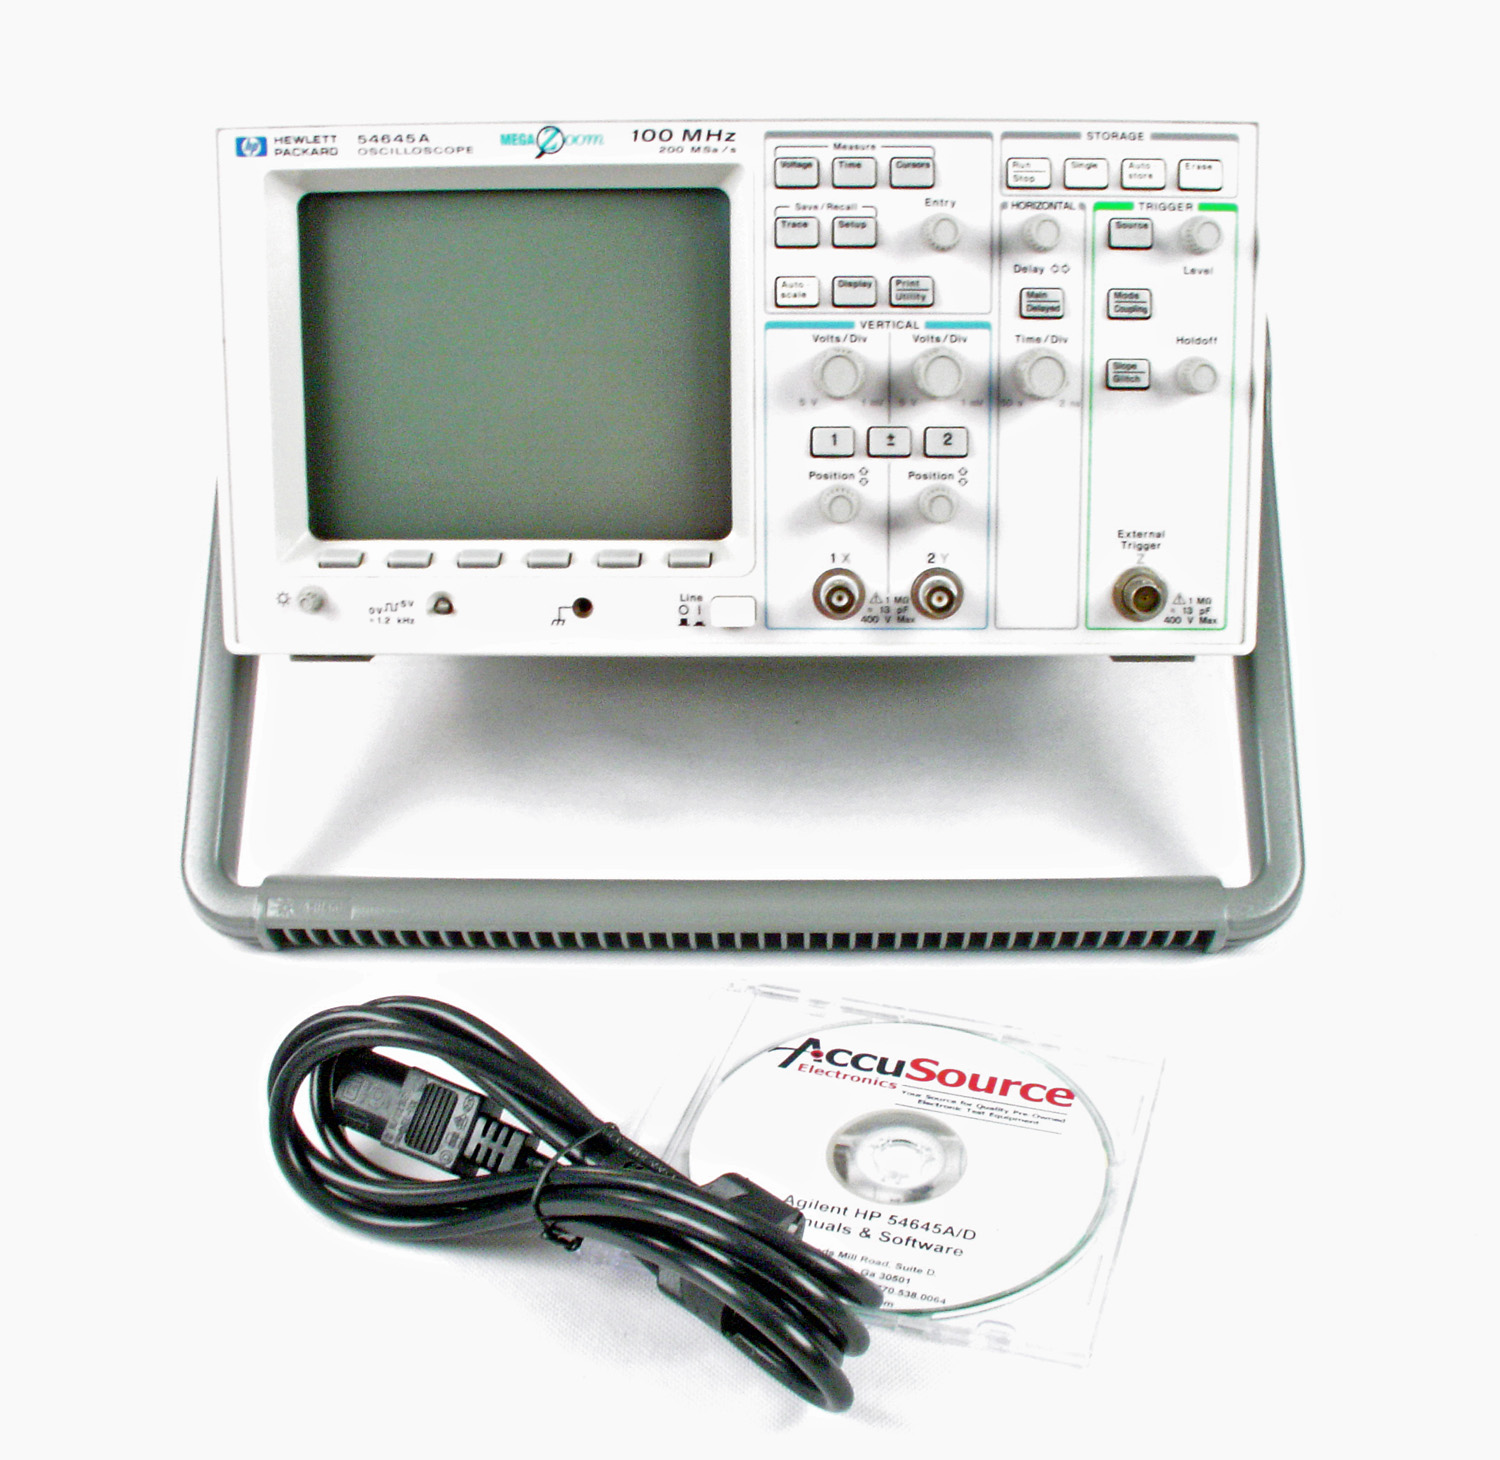 HP / Agilent 54641A for sale